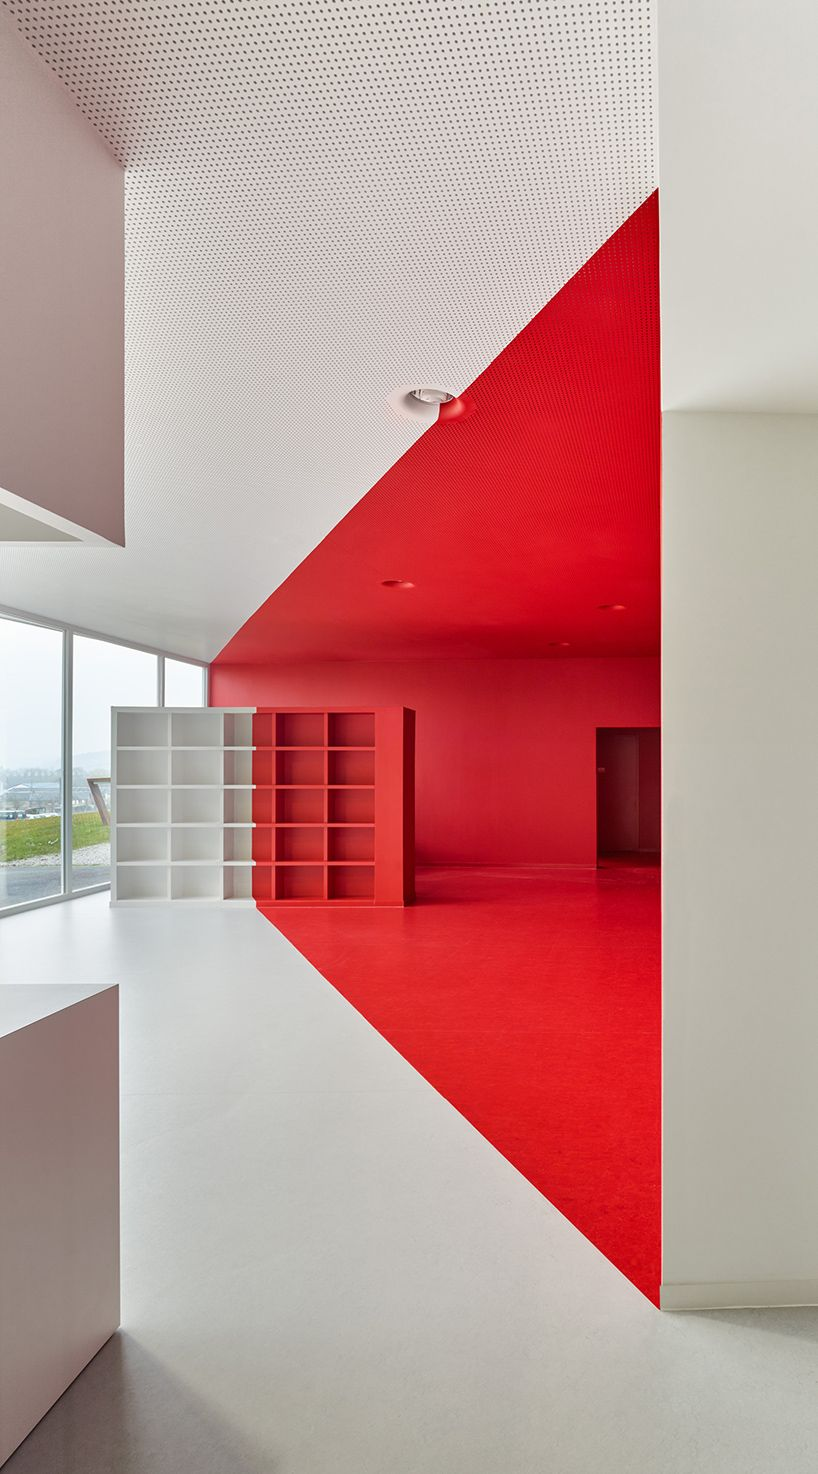 Dominique coulon builds green retirement home in france also color rh pinterest